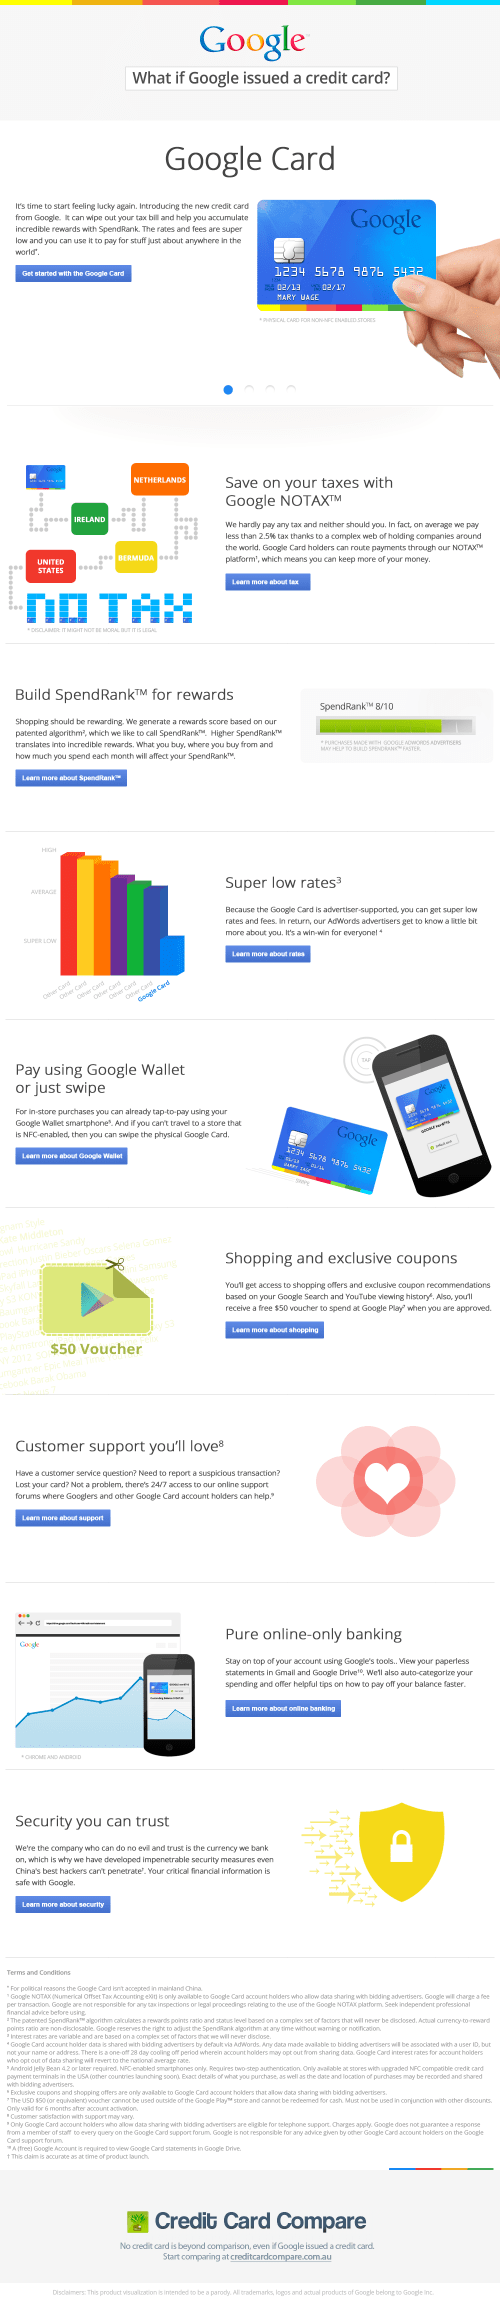 Has Google released its own credit card?